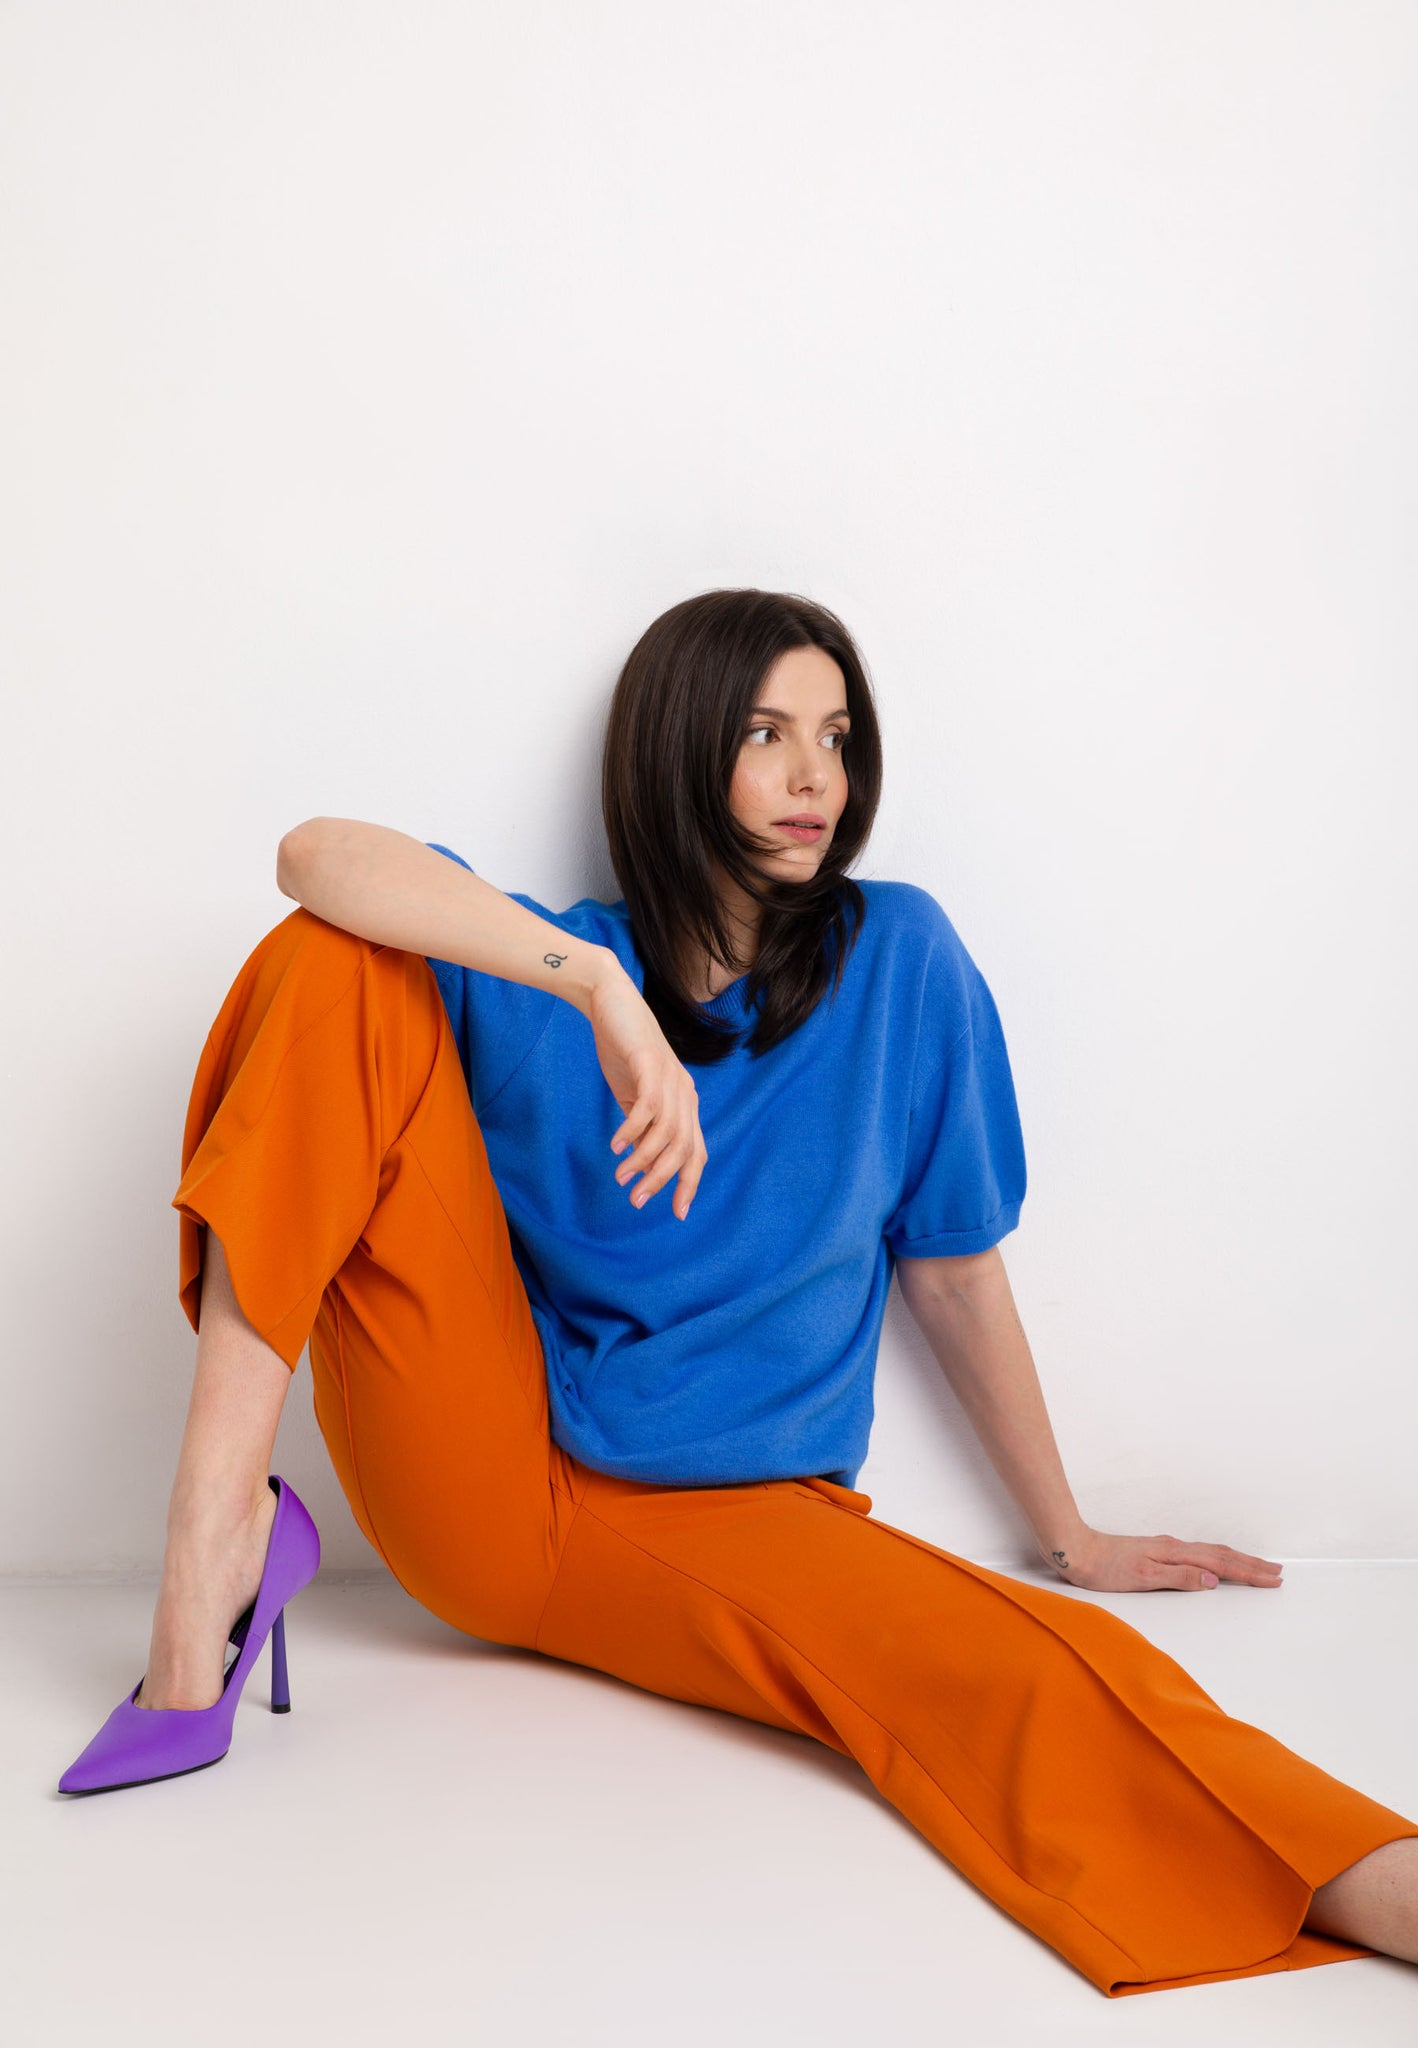 NEED. KNIT. NOW.